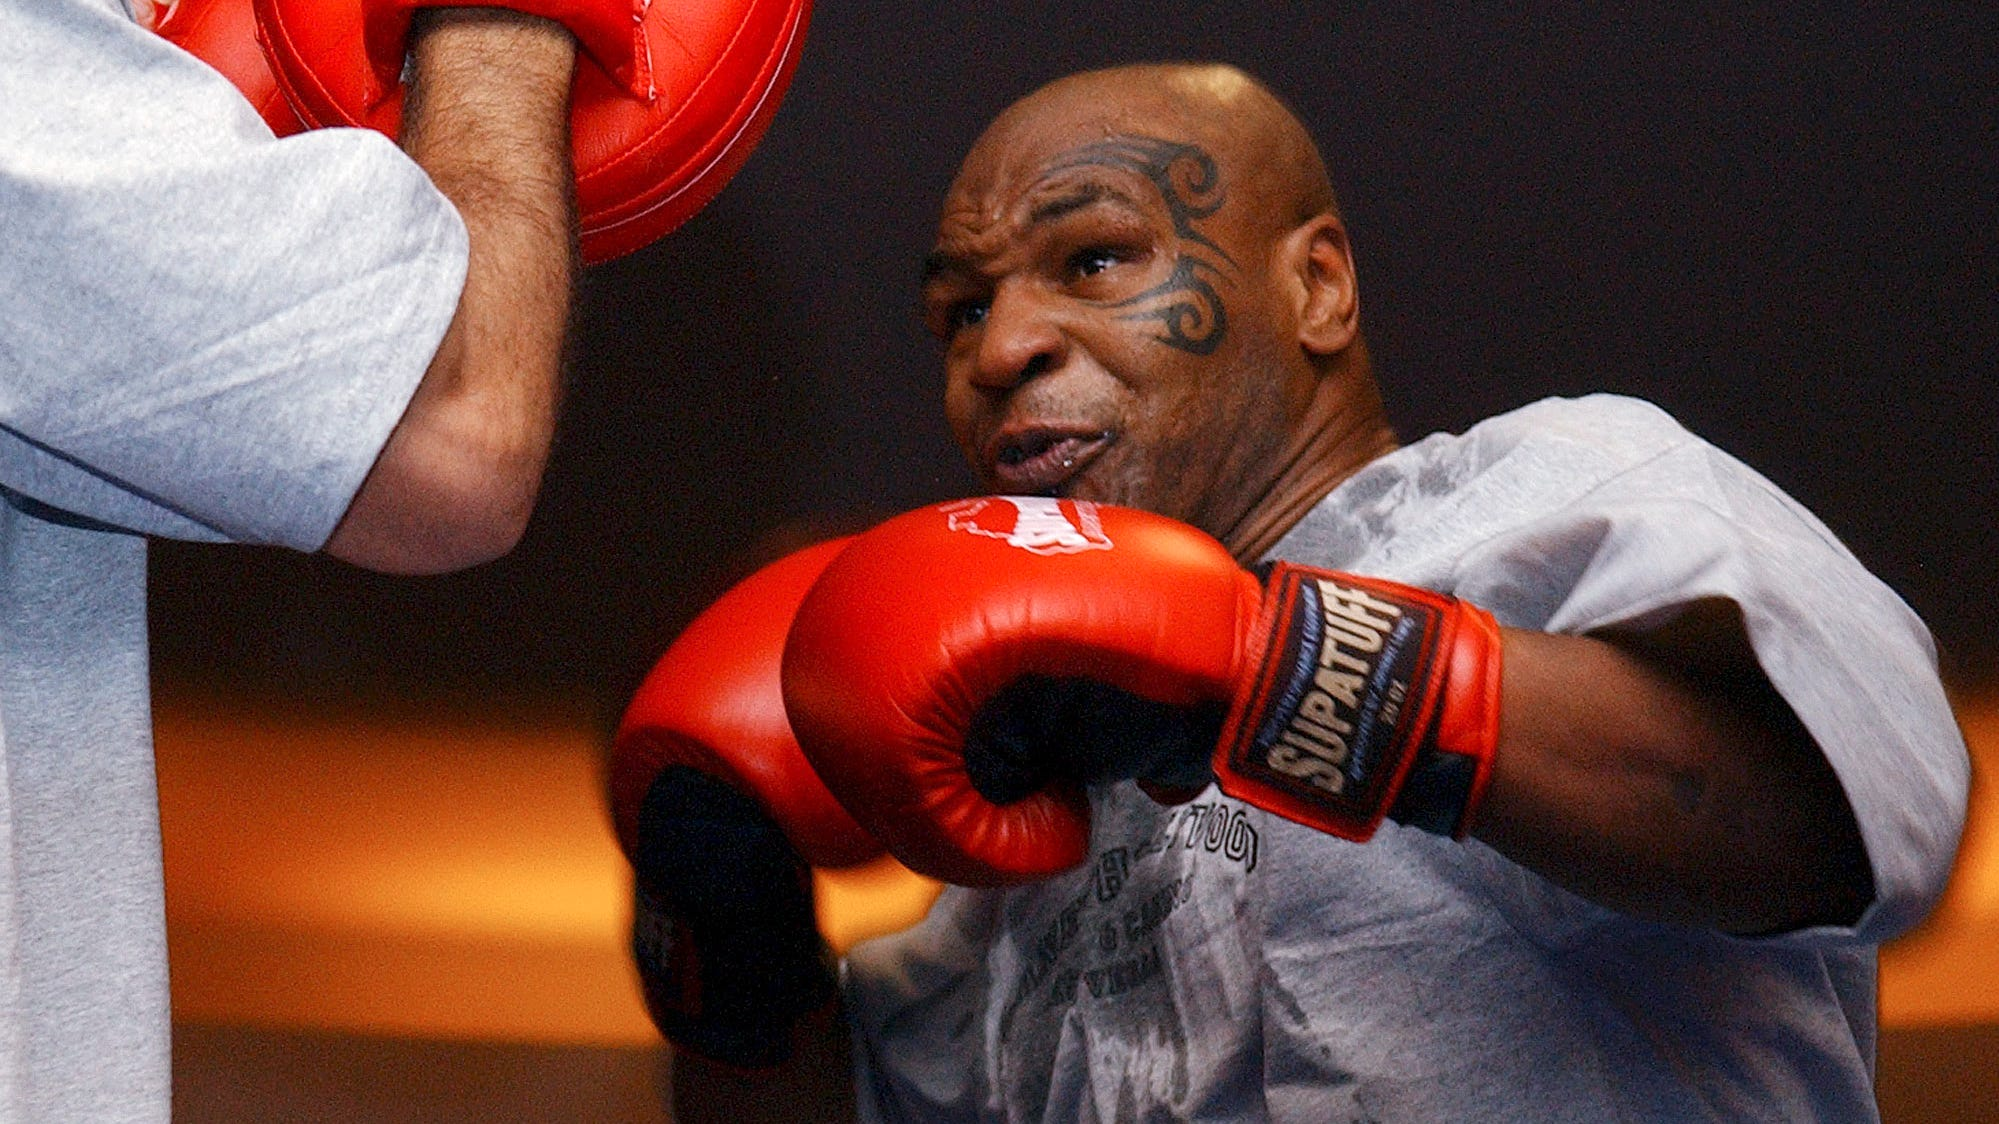 Mike Tyson returning to boxing with exhibition Sept. 12